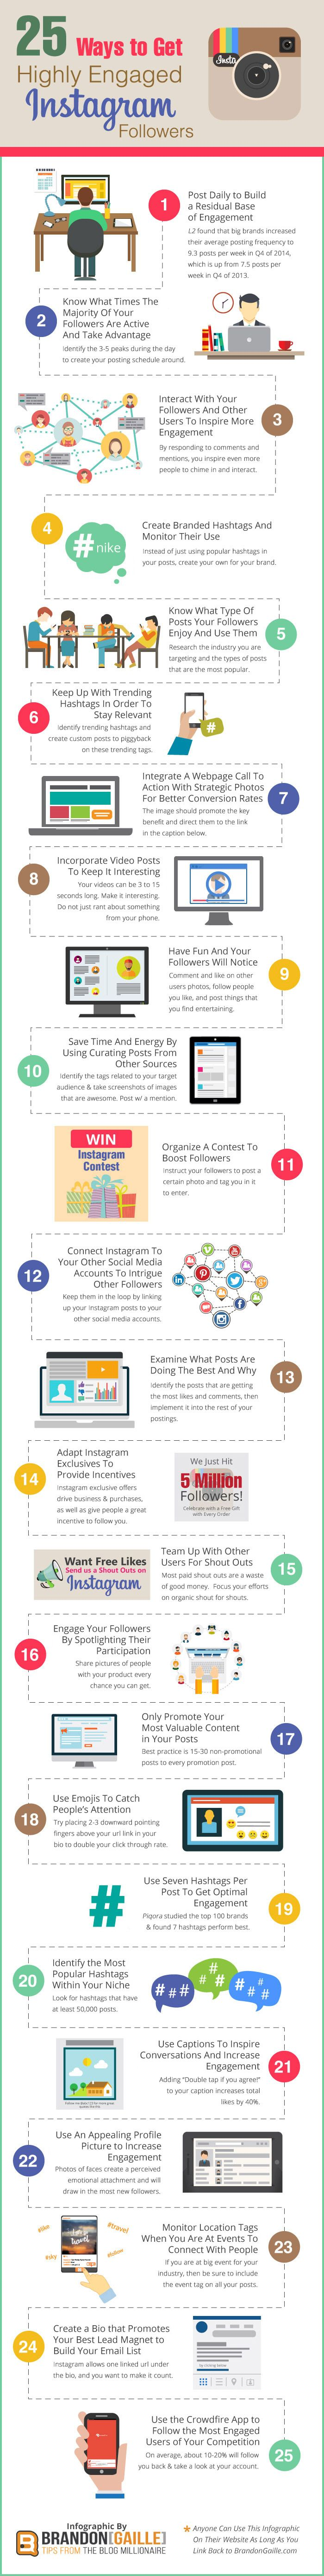 Instagram Tips 25 Ways to Get Loads of Highly Engaged Followers